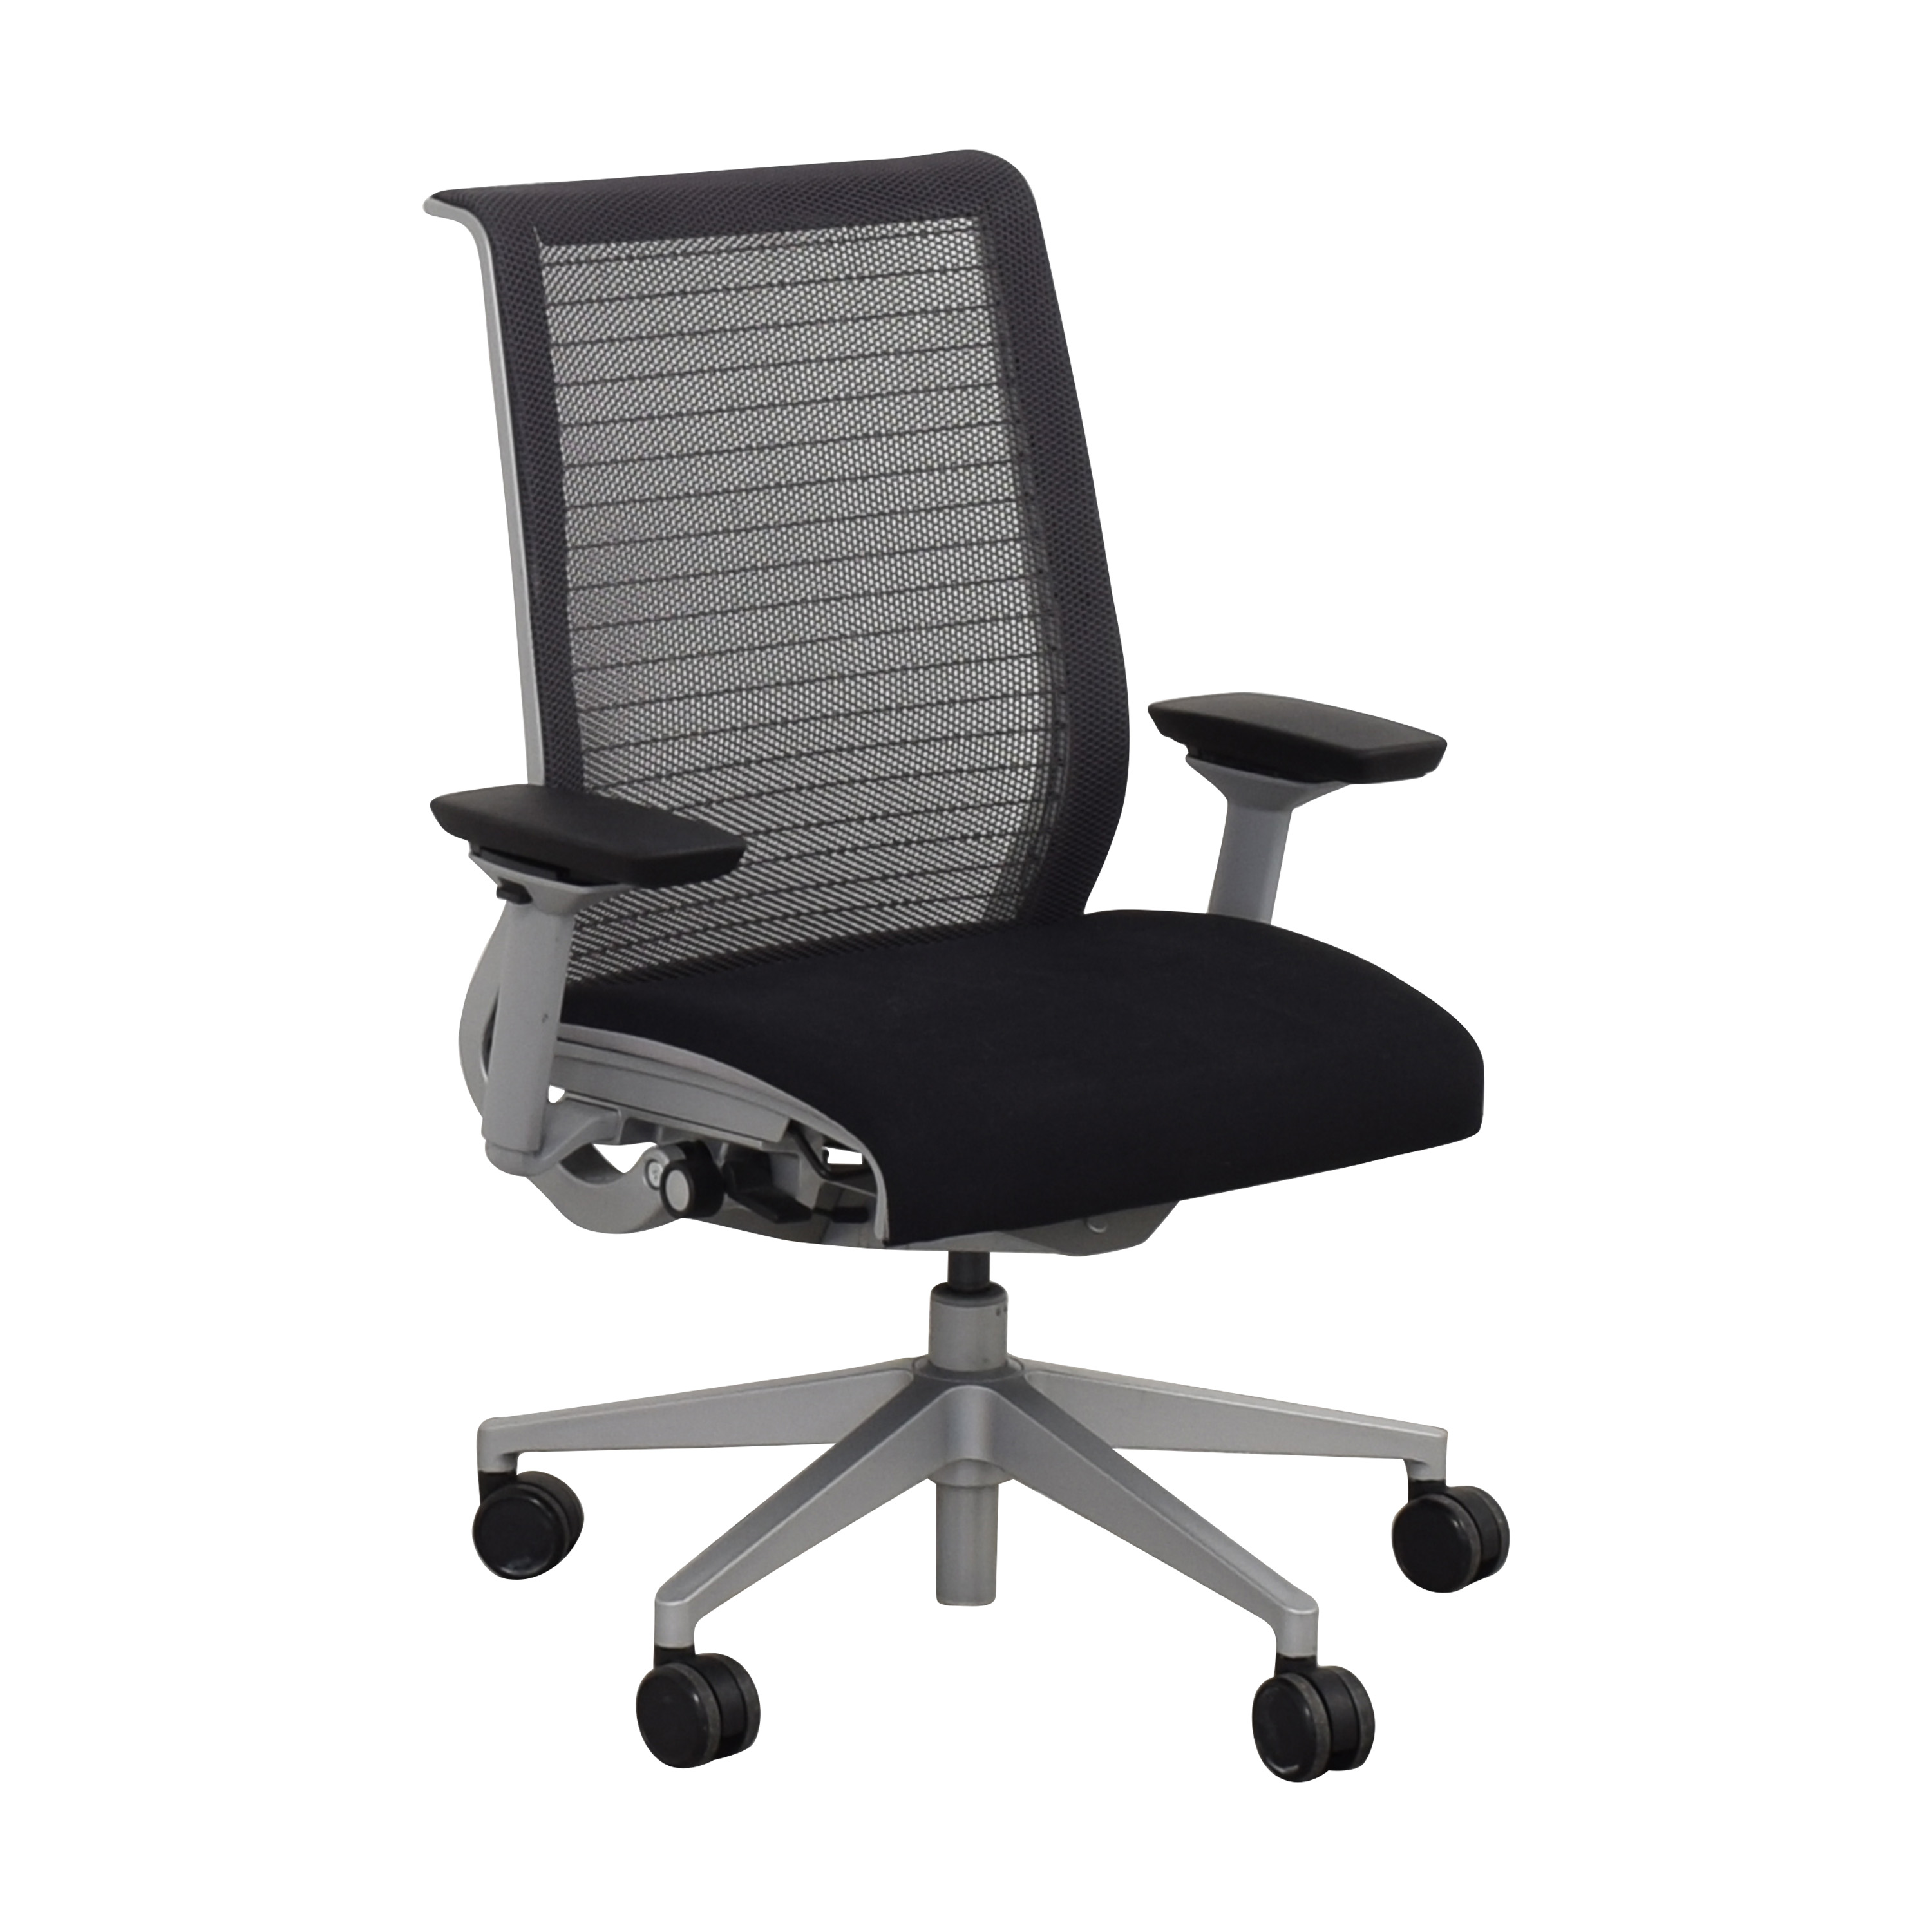 Steelcase Steelcase Cobi Swivel Chair discount